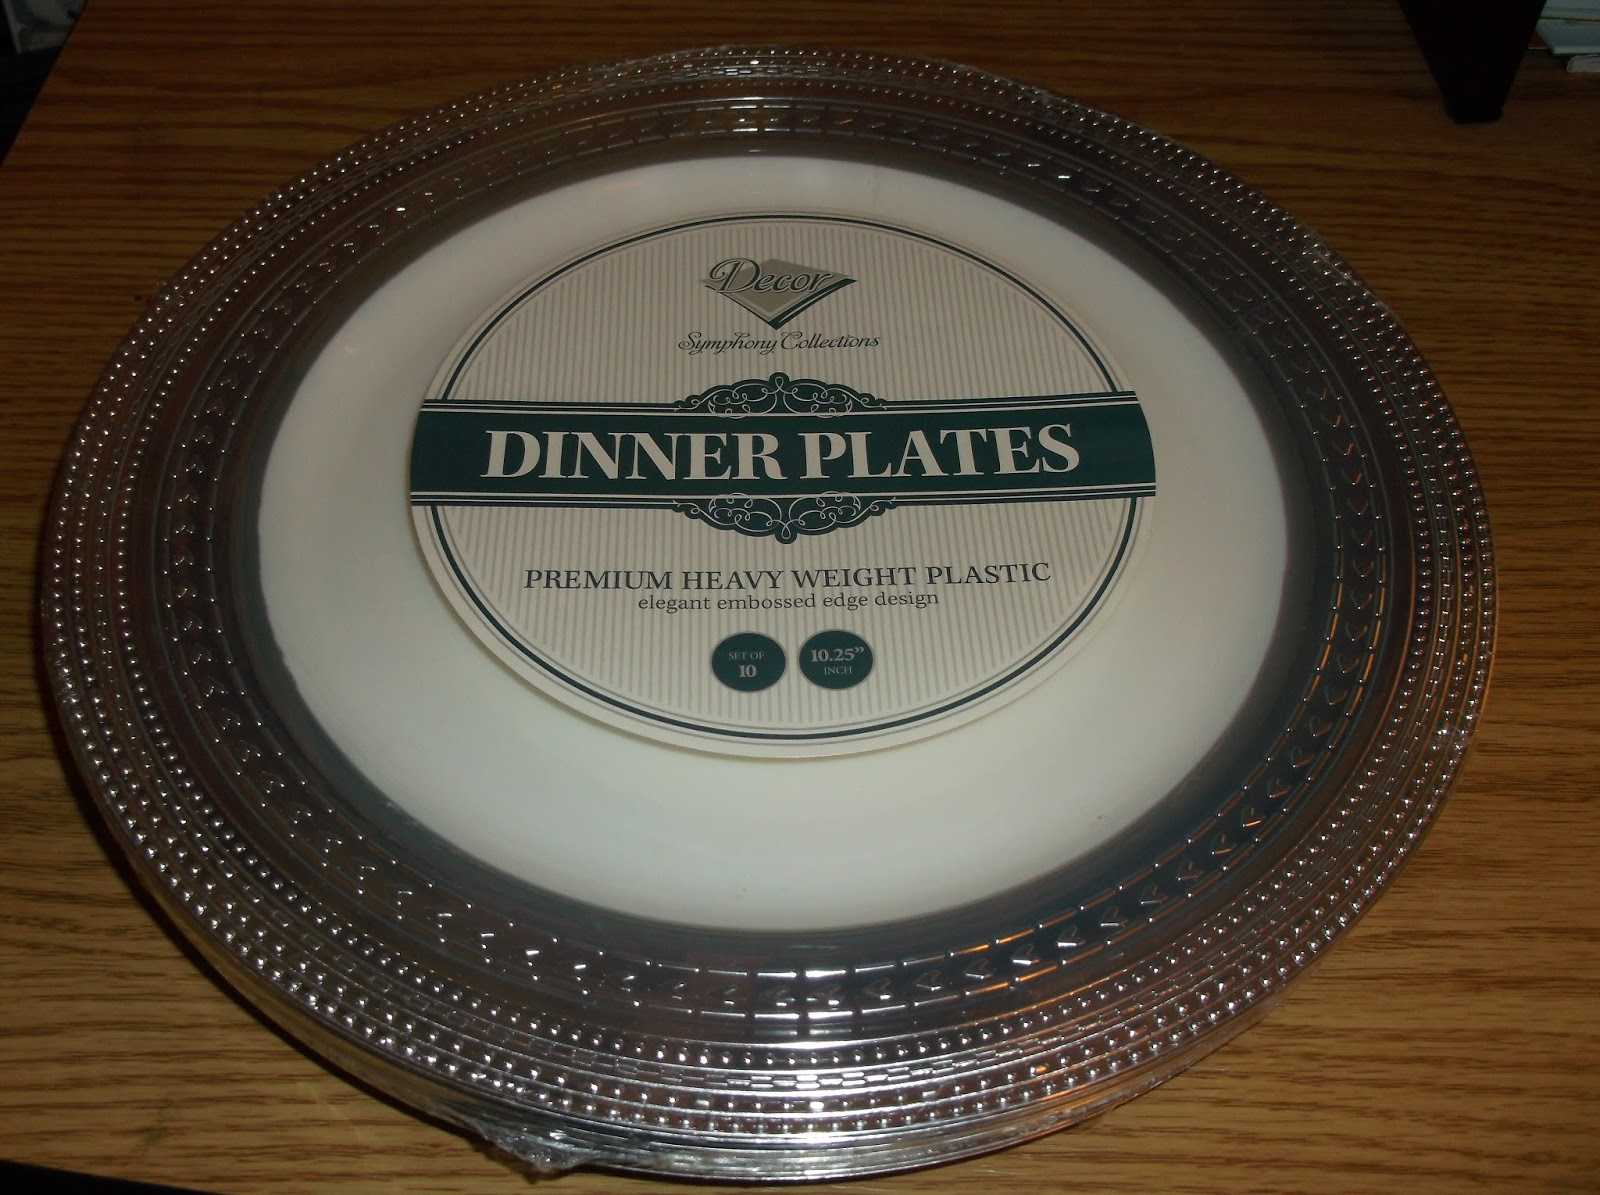 I use a lot of paper plates in my home mostly as it is an easy clean up and no dishes being put in the dishwasher although I know it is not ... & Missys Product Reviews : Posh Party Supplies